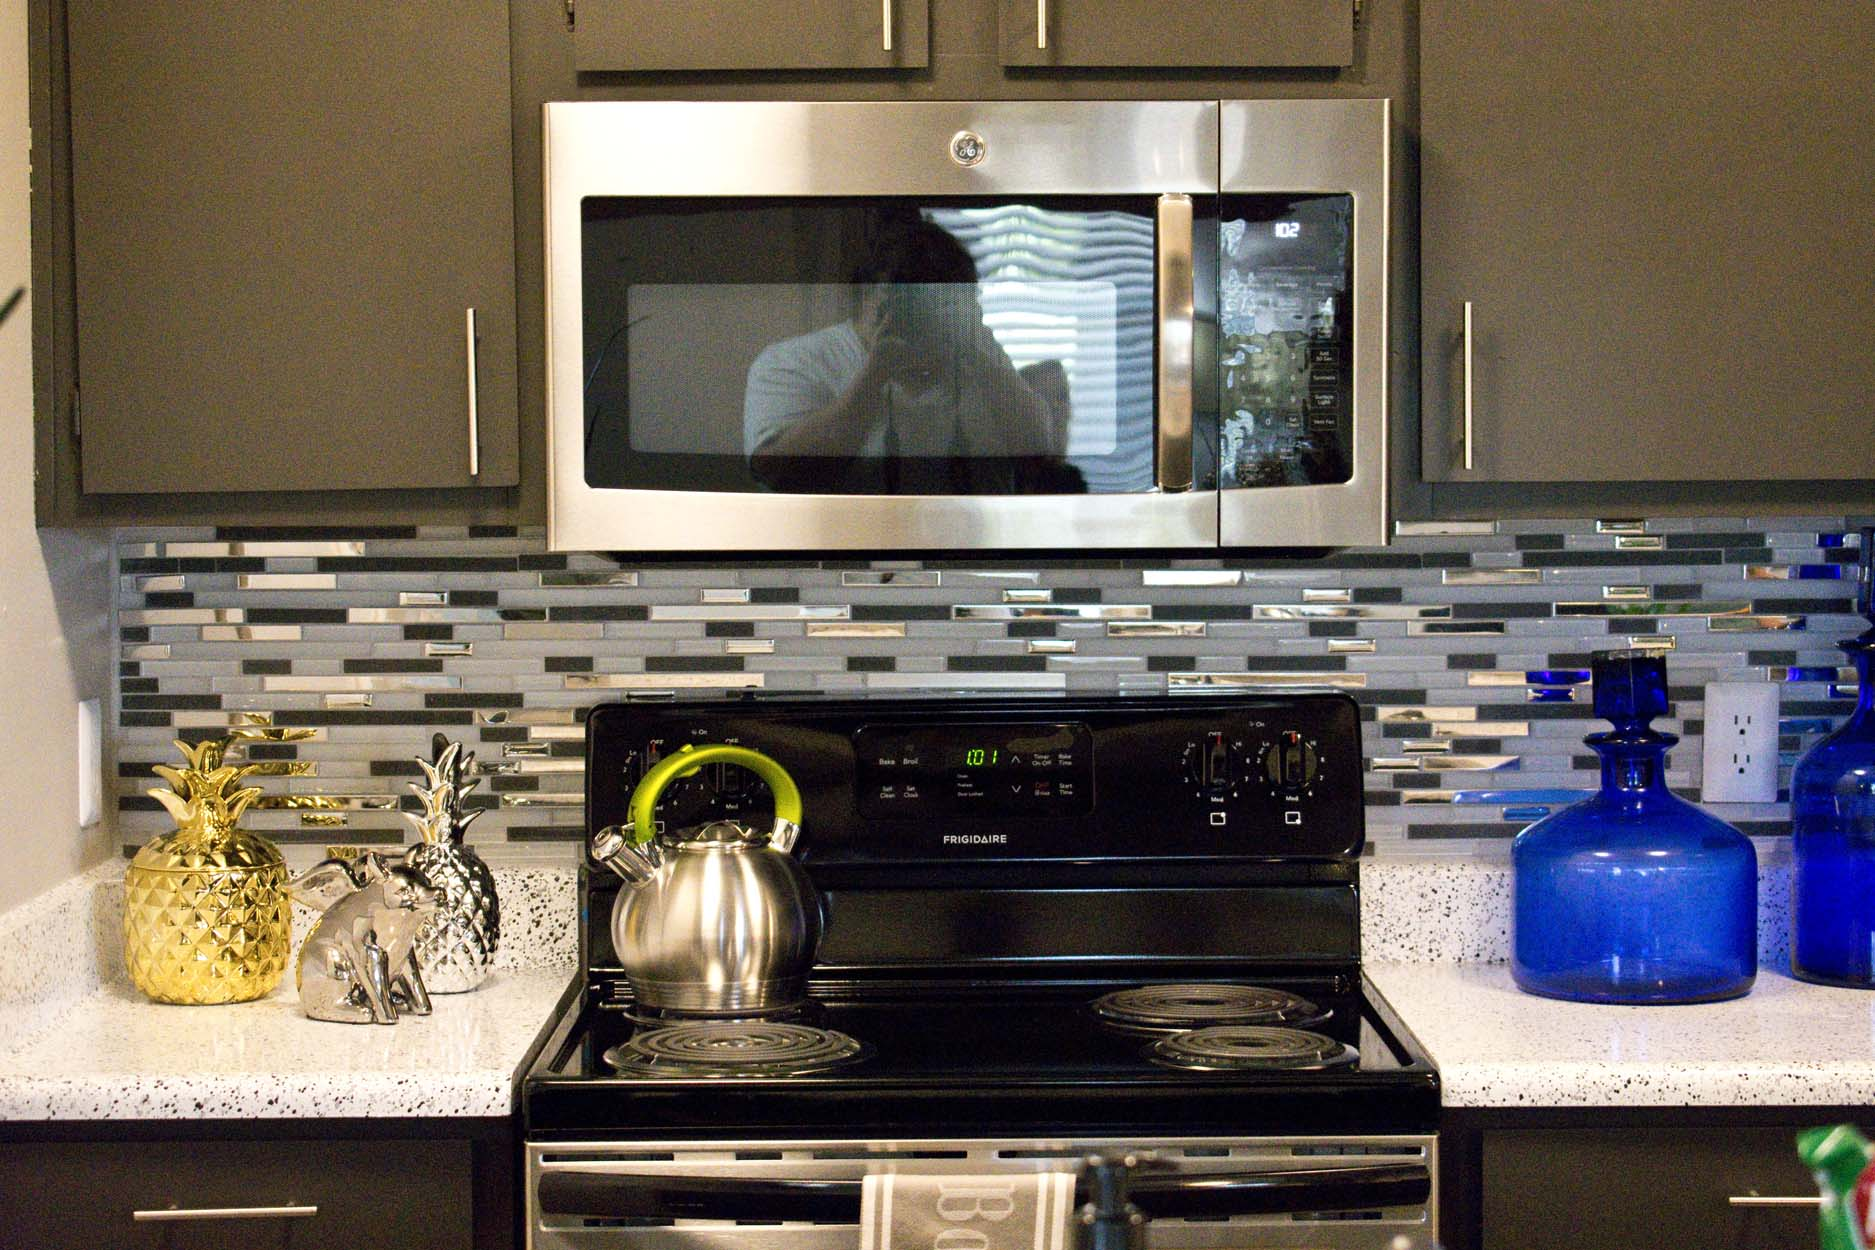 Our New Upgrades featuring Gray Paint, Stainless Steel Appliances and LED Lighting